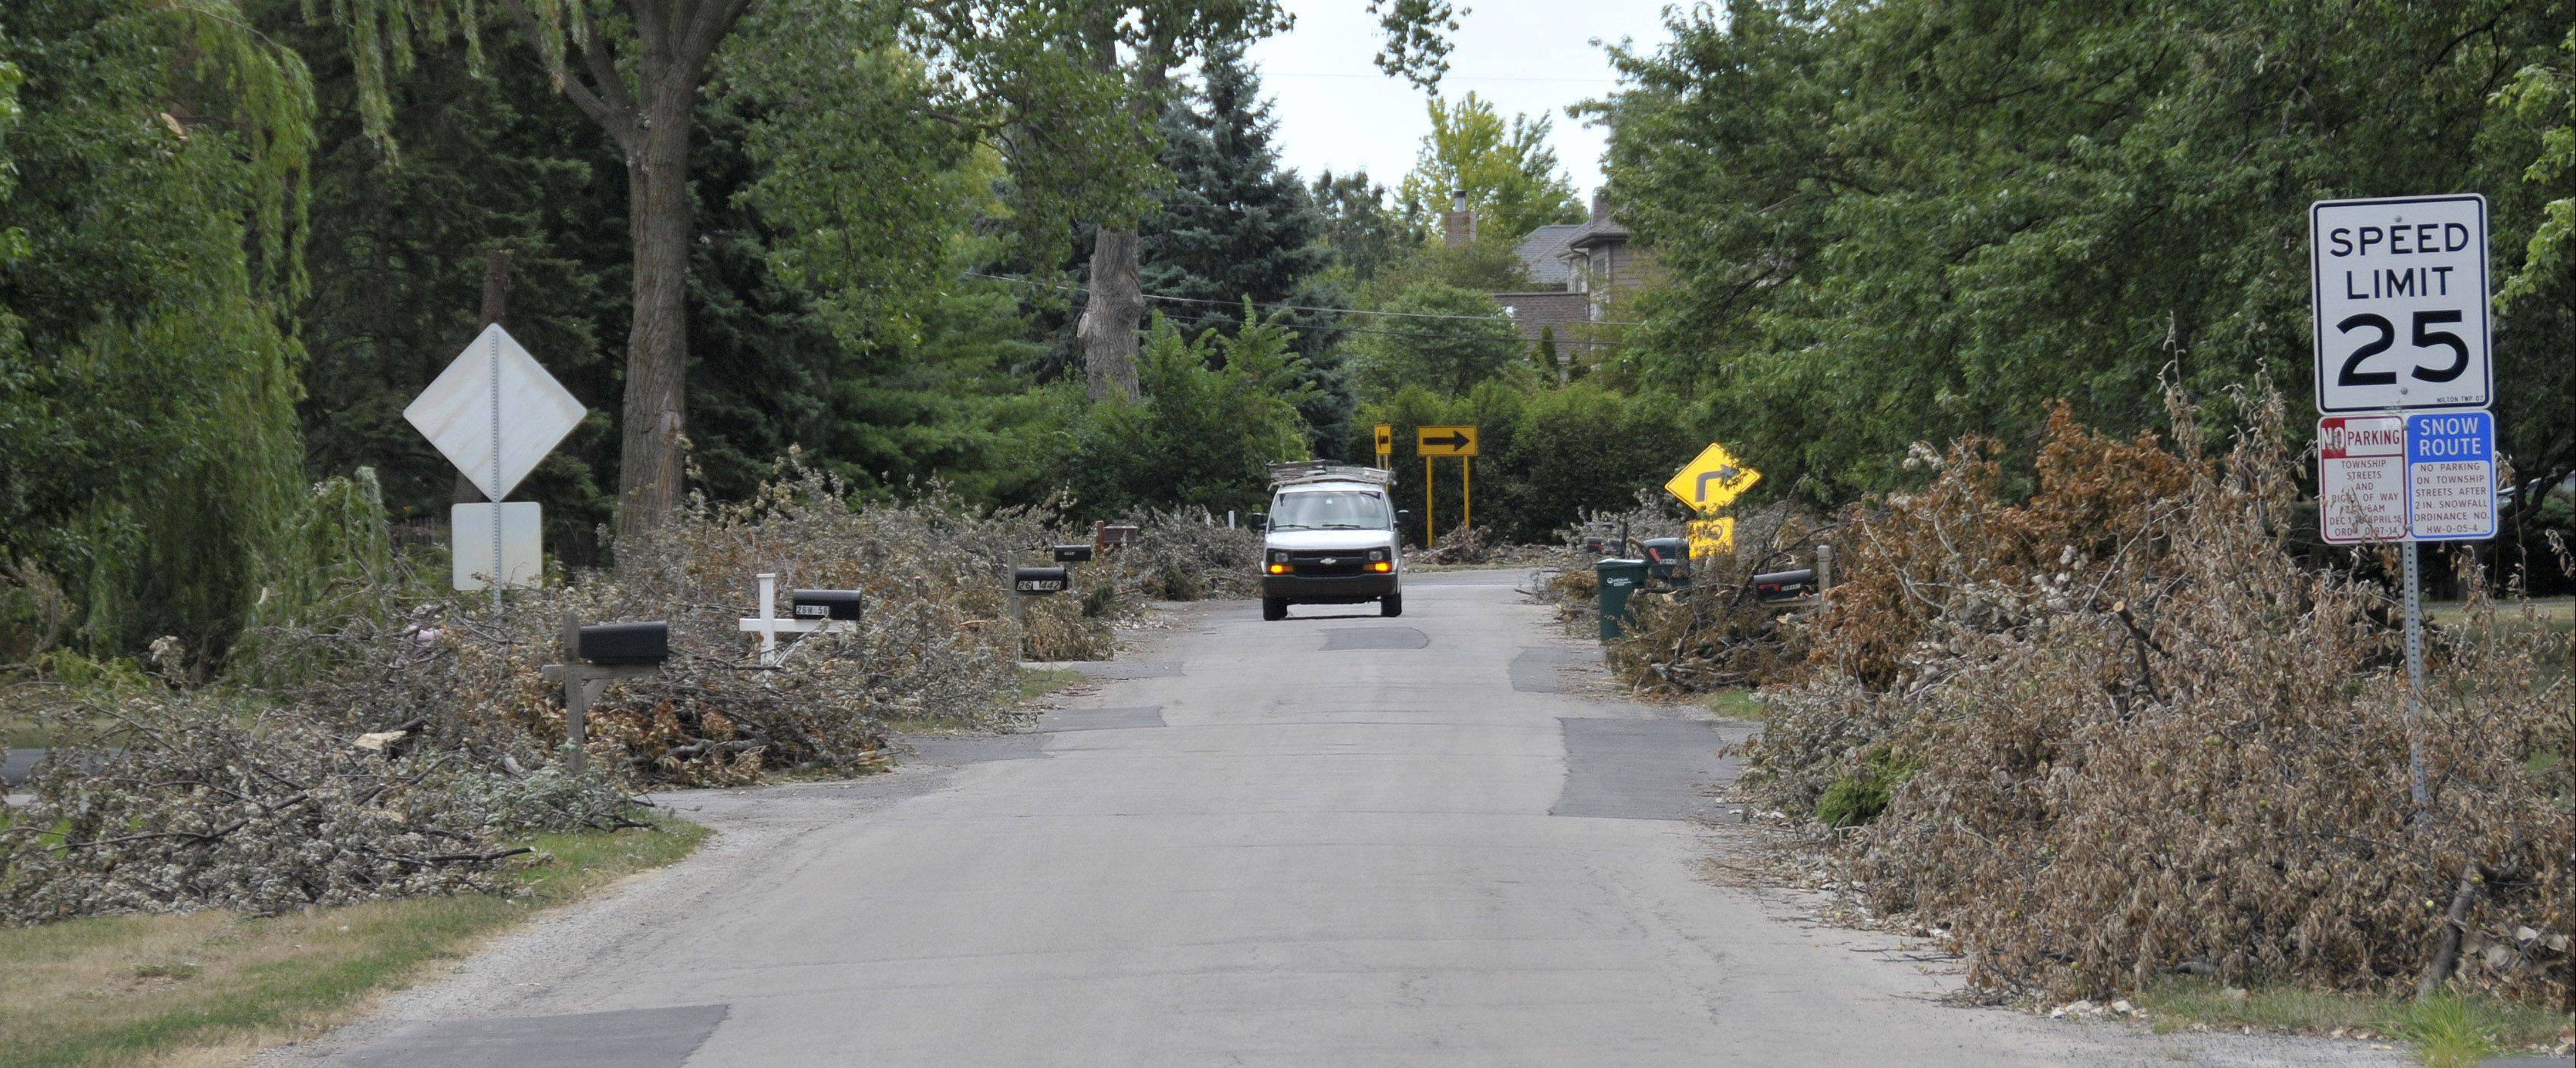 A truck makes its way along National Street in unincorporated Milton Township between Carol Stream and Winfield, while dead wood is piled up lining the streets, waiting to be cleared.